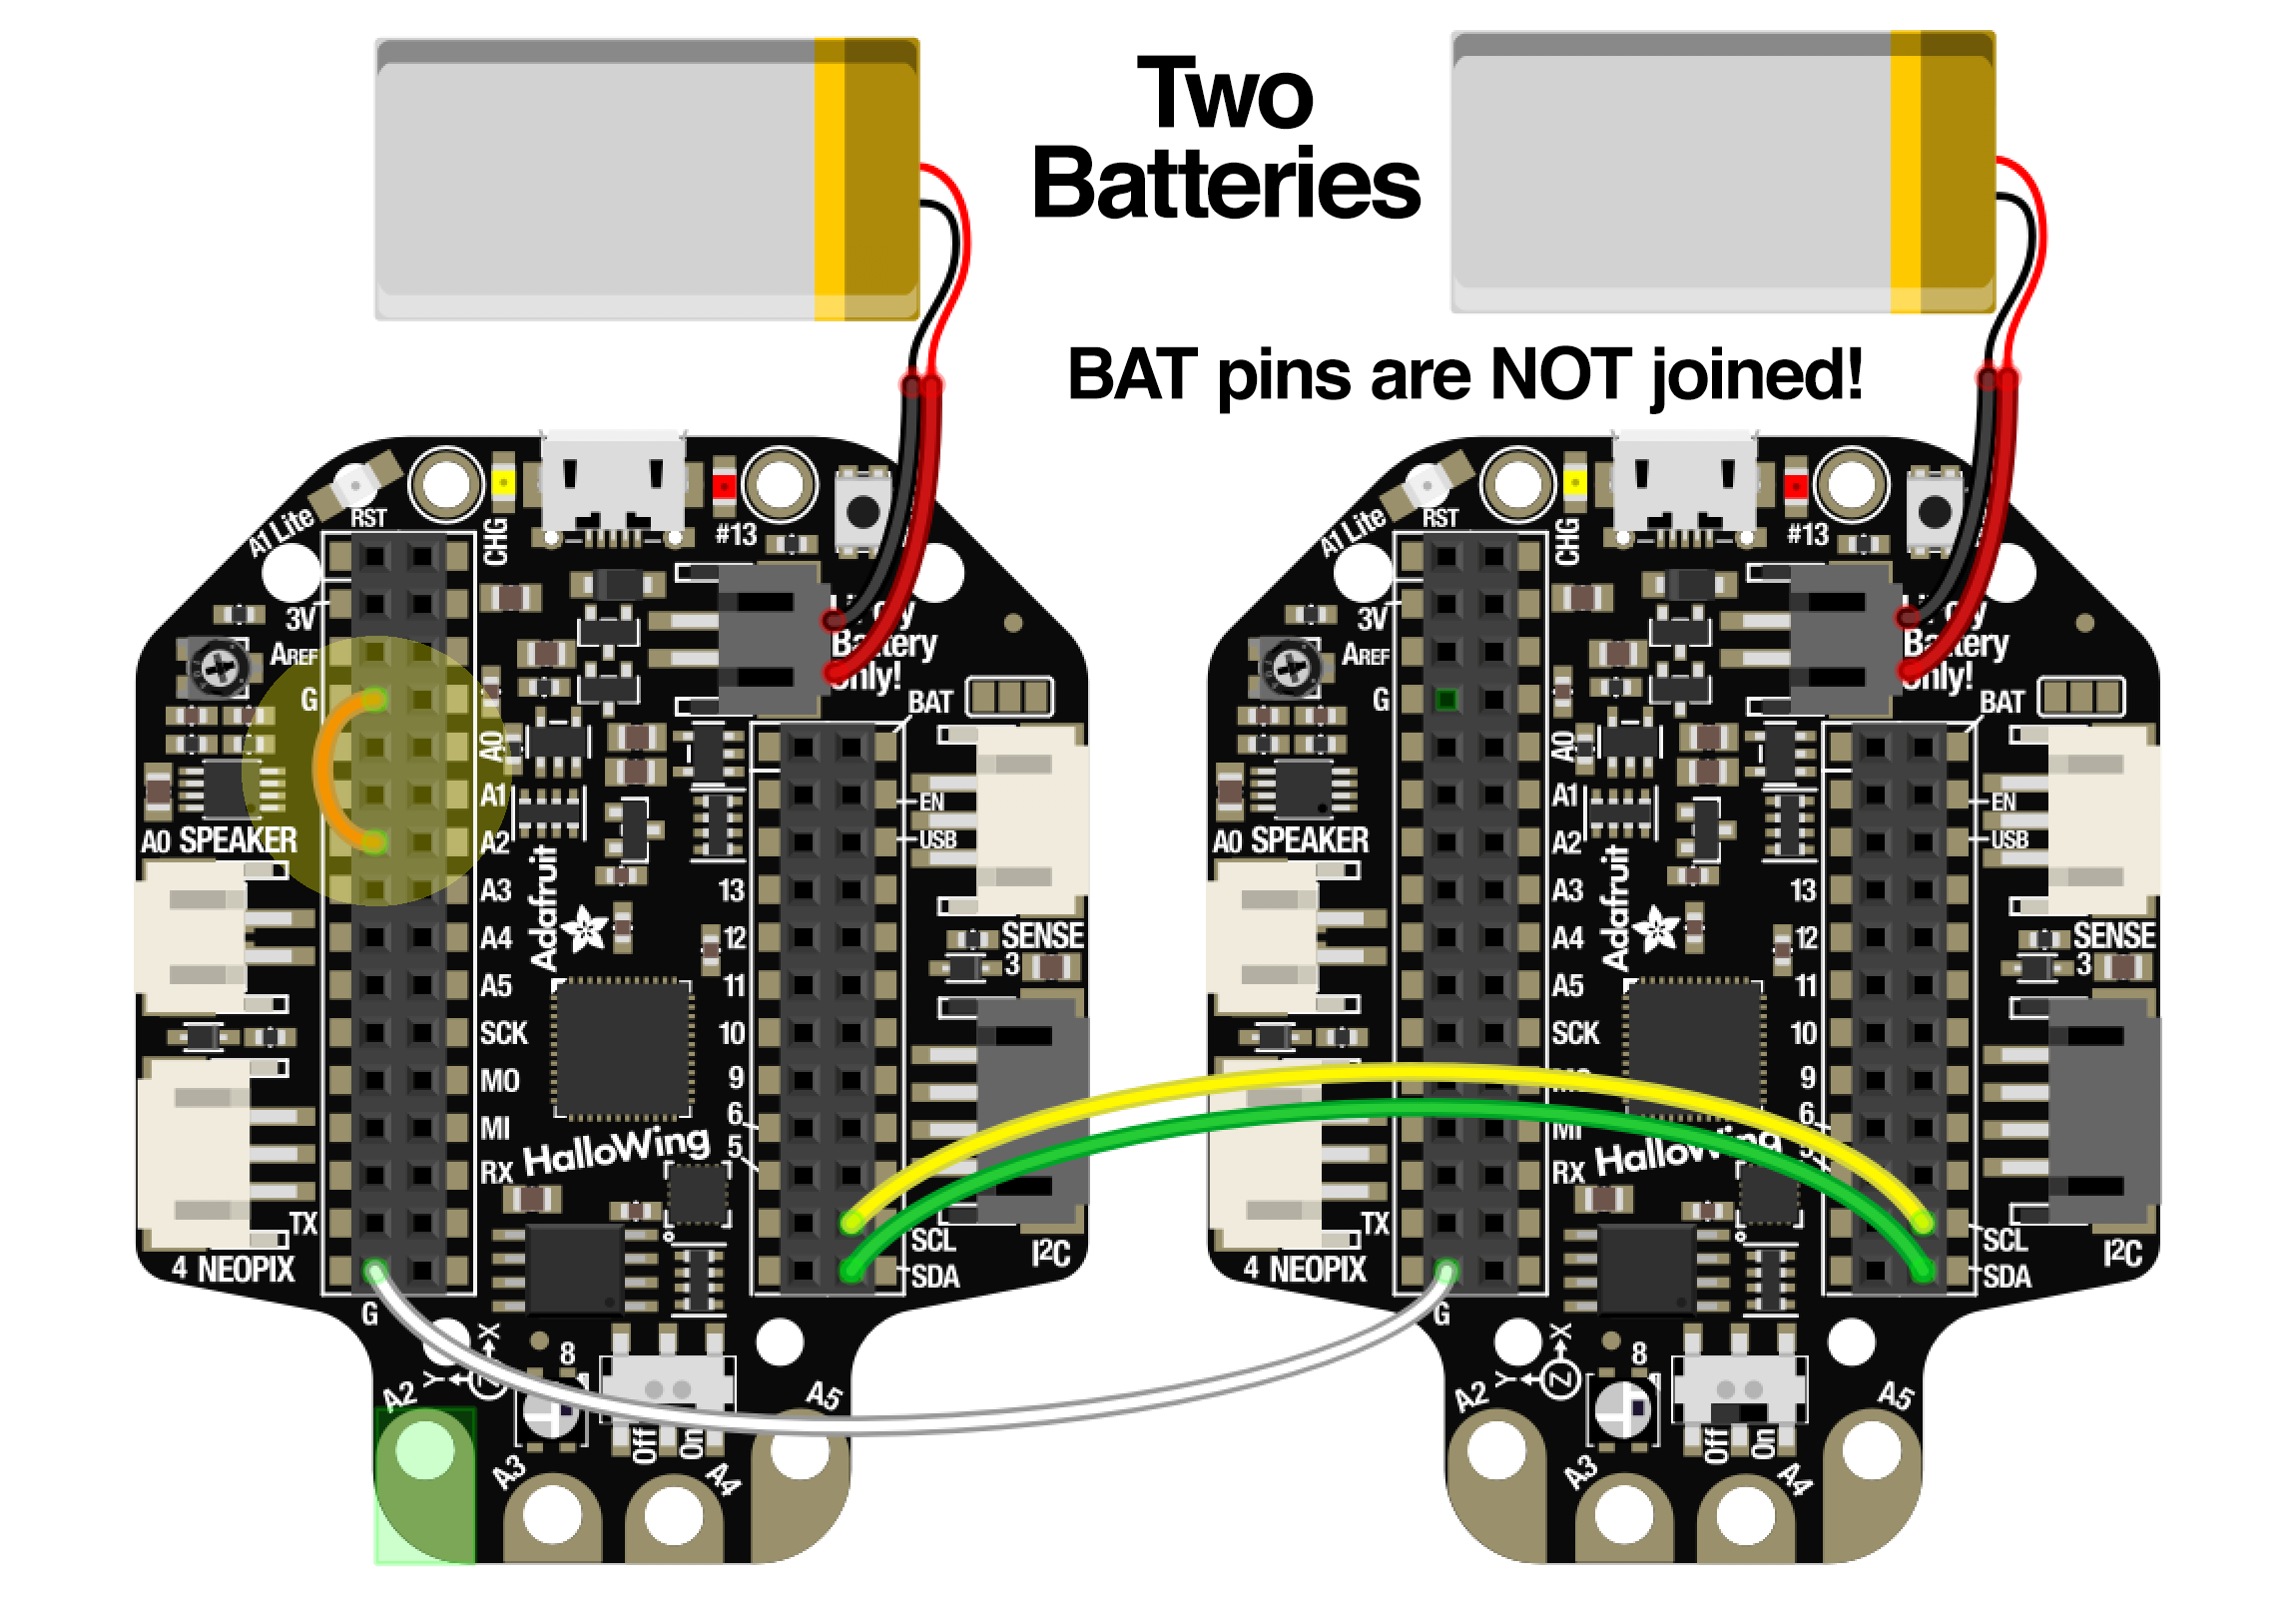 adafruit_products_hallowing-link-2bat.png